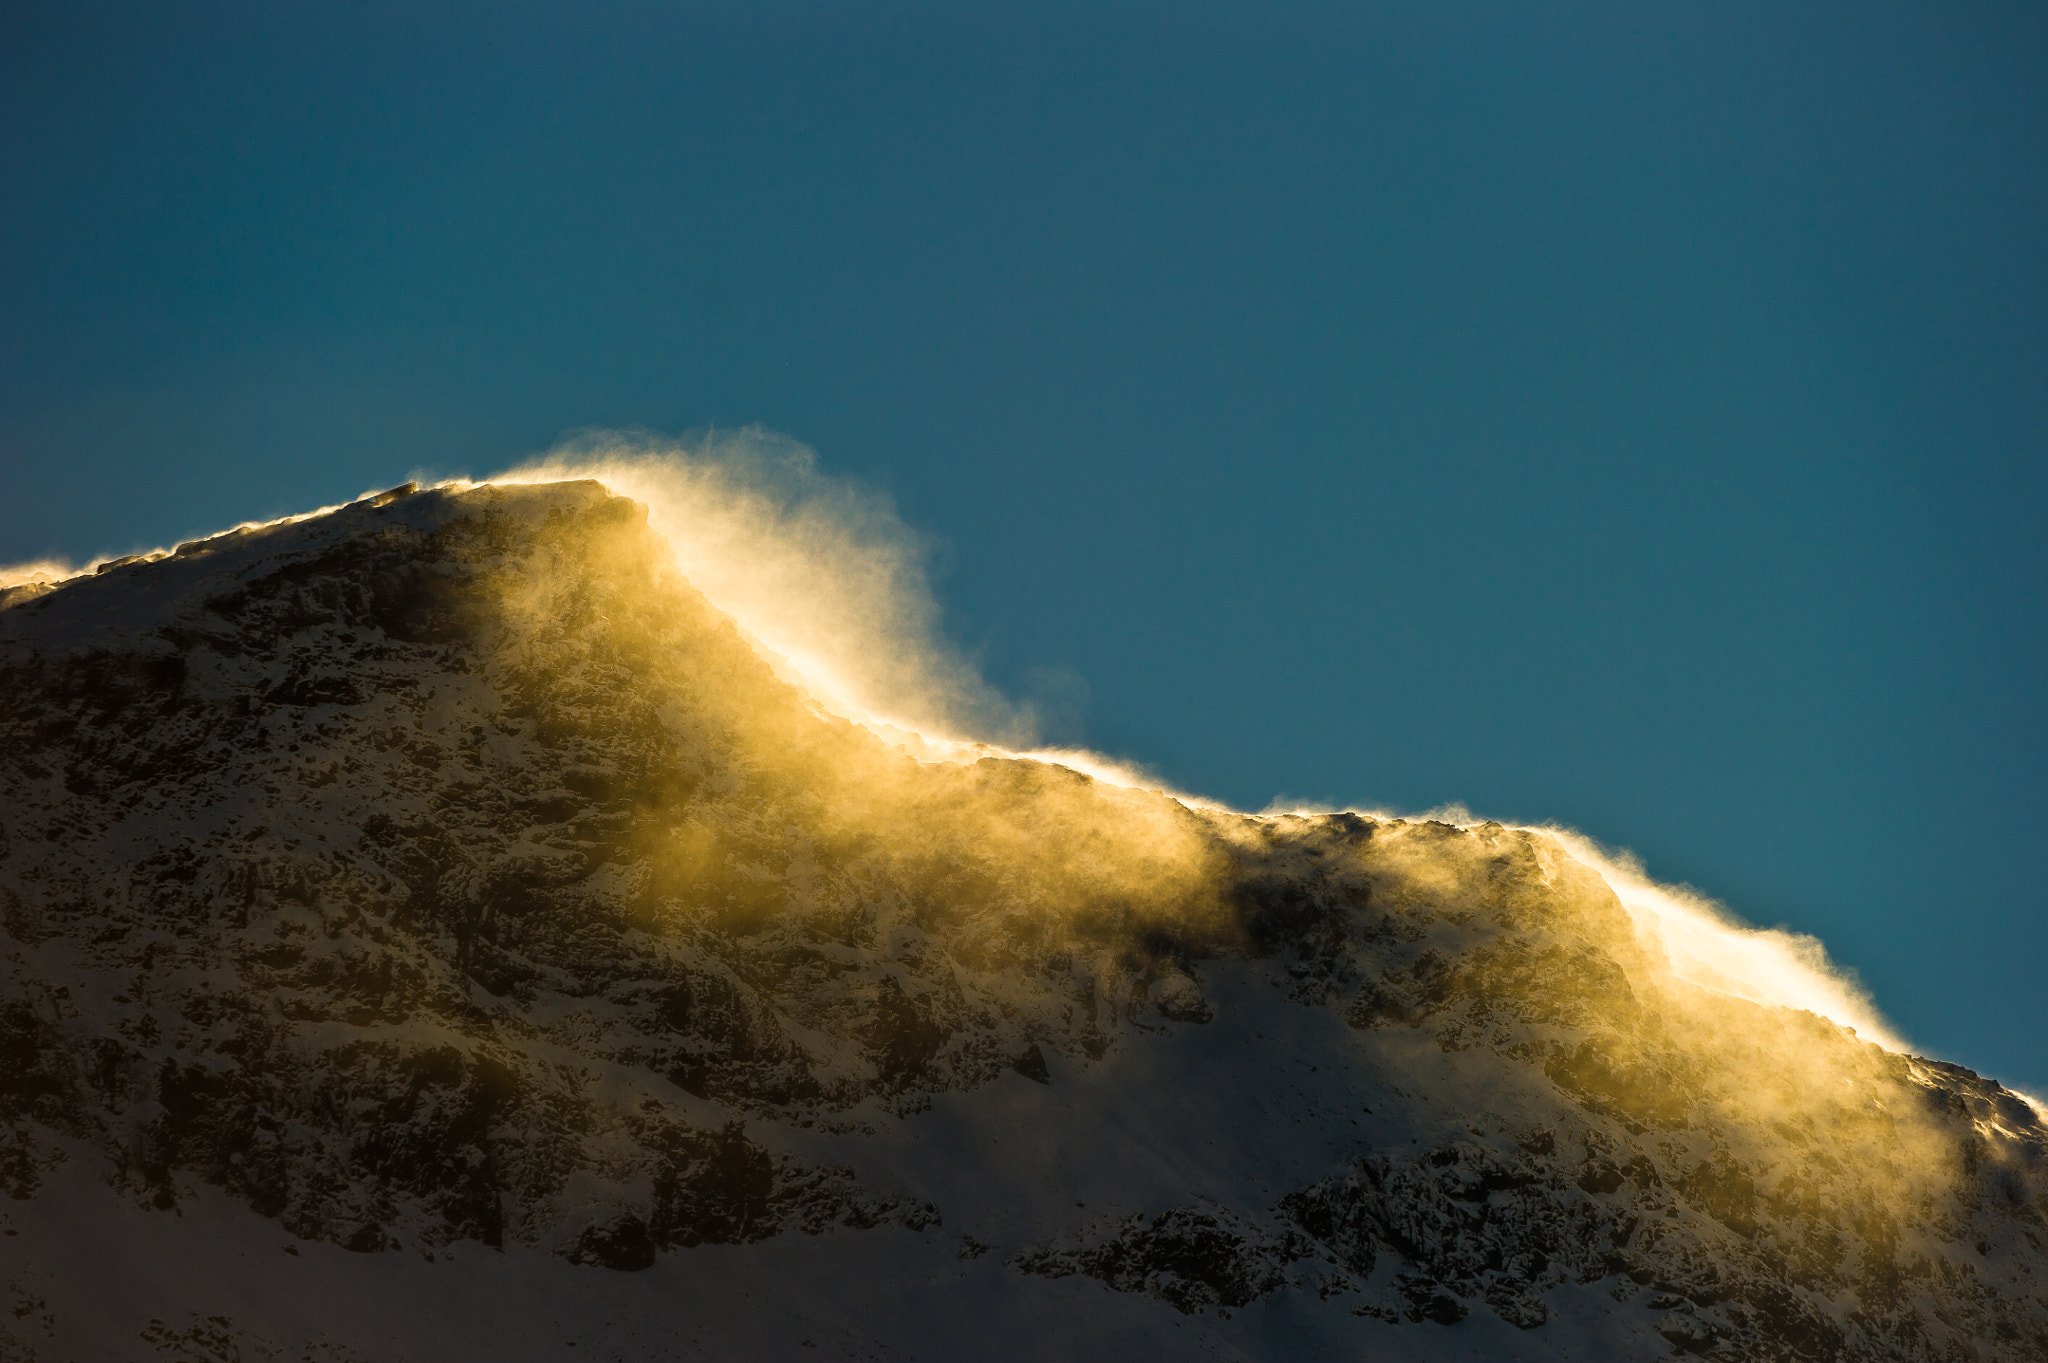 Photograph Snow in the sun by Geir Magne  Sætre on 500px